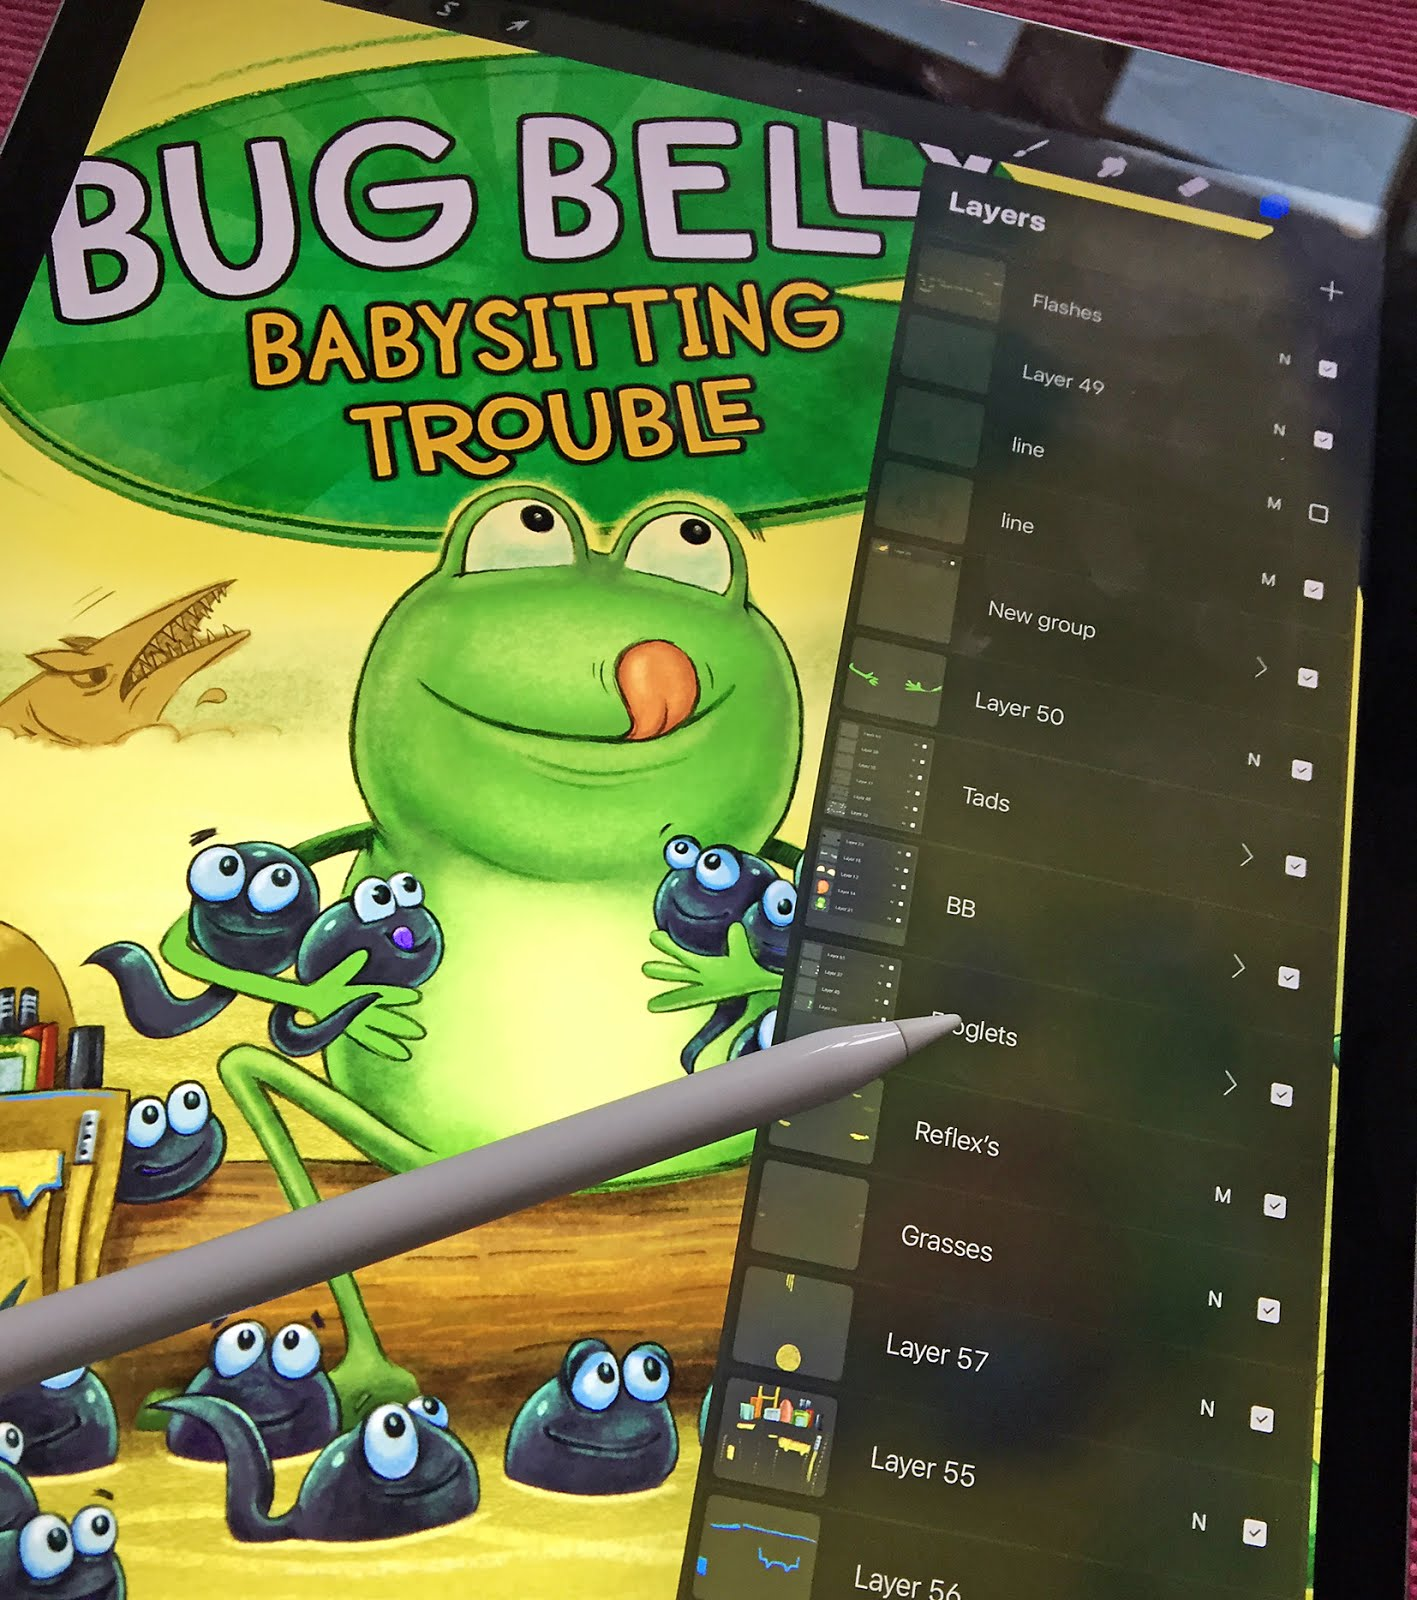 VIDEO OF BUG BELLY COVER ARTWORK